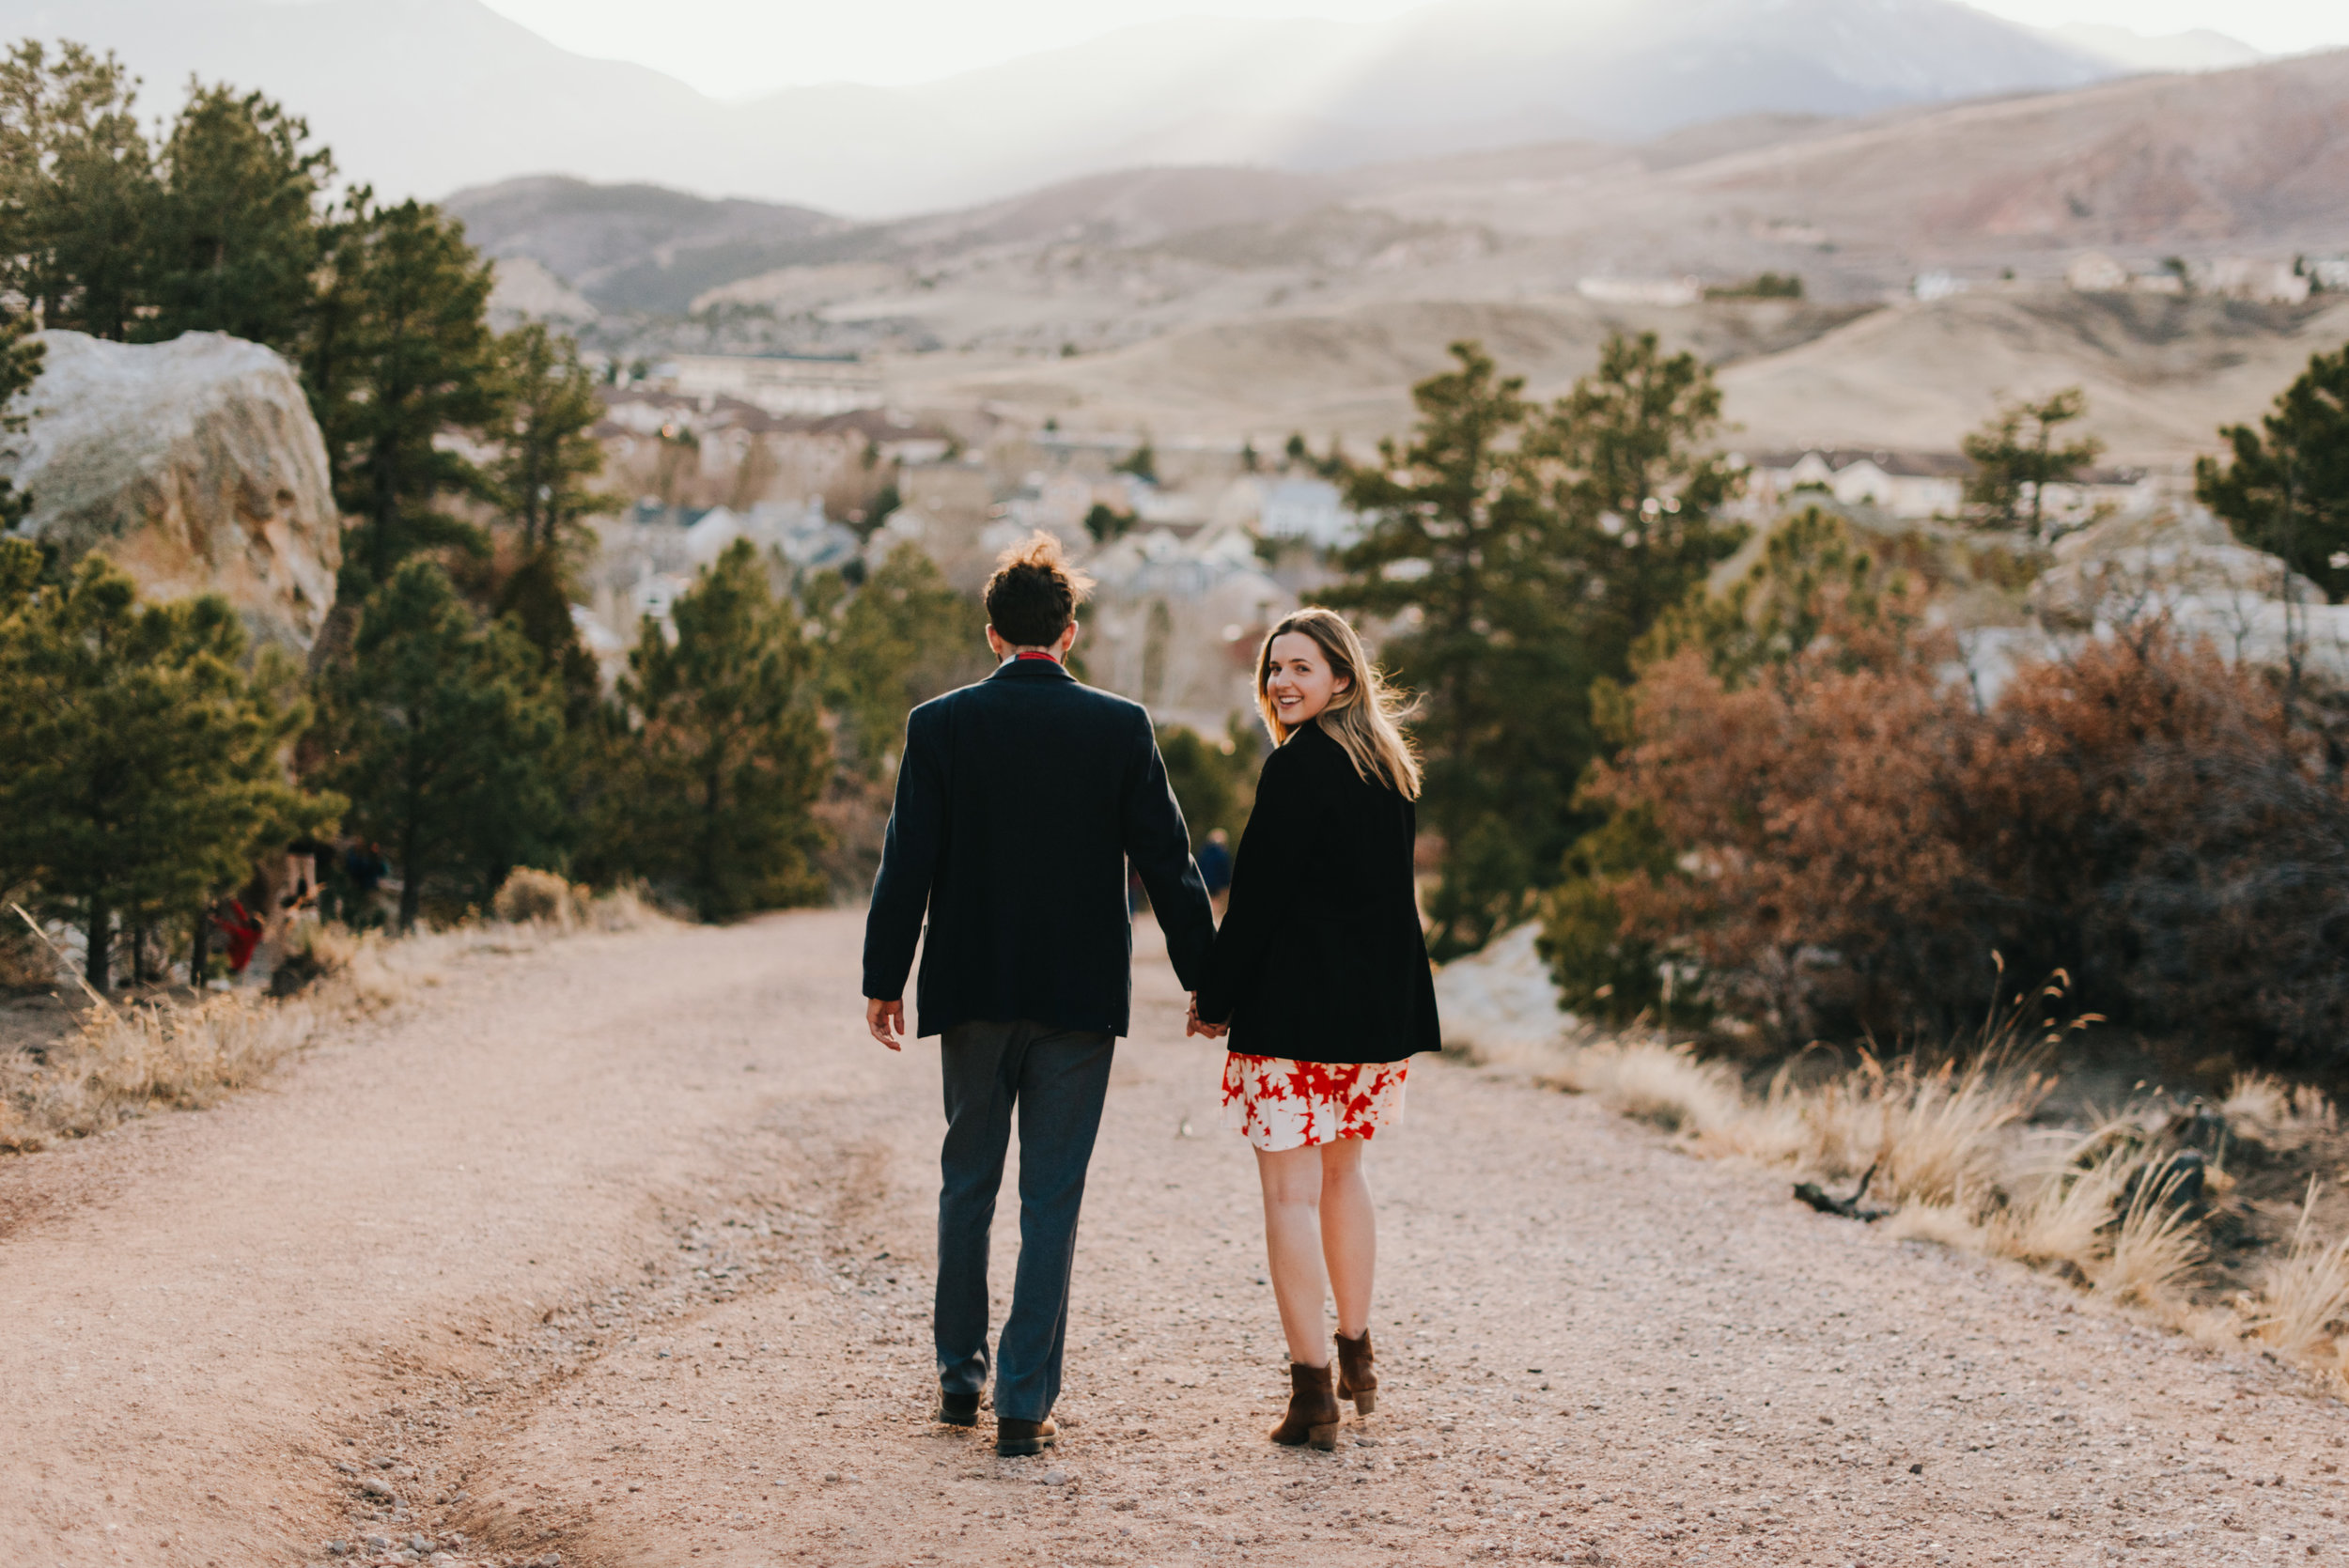 Engagement-session-colorado-engagement-session-Adventurous-Wedding-Photography-Adventurous-Wedding-Photograph-Adventure-Elopement-Photographer-Adventurous-Elopement-Photograph-Adventurous-Elopement-Photographer-Adventurous-Destination-Elopement-Photographer-Destination-Elopement-Photography-Destination-Elopement-Packages-Rocky-Mountain-Elopement-Rocky-Mountain-National-Park-Photographer-RMNP-Wedding-RMNP-Photographer-RMNP-Photography-Colorado-Elopement-Colorado-Elopement-Photographer-Colorado-Elopement-Photography-Iceland-Elopement-Photographer-Iceland-Elopement-Packages-Hiking-Wedding-Hiking-Elopement-Photographer-Mountain-Wedding-Photographer-Mountain-Wedding-Photography-Colorado-Mountain-Wedding-Colorado-Mountain-Elopement-Adventure-wedding-adventure-elopement-Colorado-springs-garden-of-the-gods-engagement-garden-of-the-gods-couples-adventure-session-Teresa-Woodhull-photography-Teresa-Woodhull-photographer-Intimate-wedding-photographer-Intimate-wedding-photography-elopement-photographer-traveling-wedding-photographer-traveling-elopement-photographer-Adventure-elopement-photographer-Adventure-wedding-photographer-Destination-wedding-Destination-elopement-Destination-wedding-photography-Destination-wedding-photographer-Teresa-Woodhull-Intimate-Wedding-Photography-Teresa-Woodhull-Intimate-Wedding-Photographer-Teresa-Woodhull-Elopement-Photography-Teresa-Woodhull-Elopement-Photographer-Elopement-Photography-Intimate-Elopement-Photographer-Intimate-Elopement-Photography-Elopement-Wedding-Weddings-Elope-Elopements-Intimate-Weddings-Adventure-Weddings-Adventure-Wedding-Photograph-Adventure-Wedding-Photograph-ted-rachel-walking-hand-in-hand-couple-holding-hands